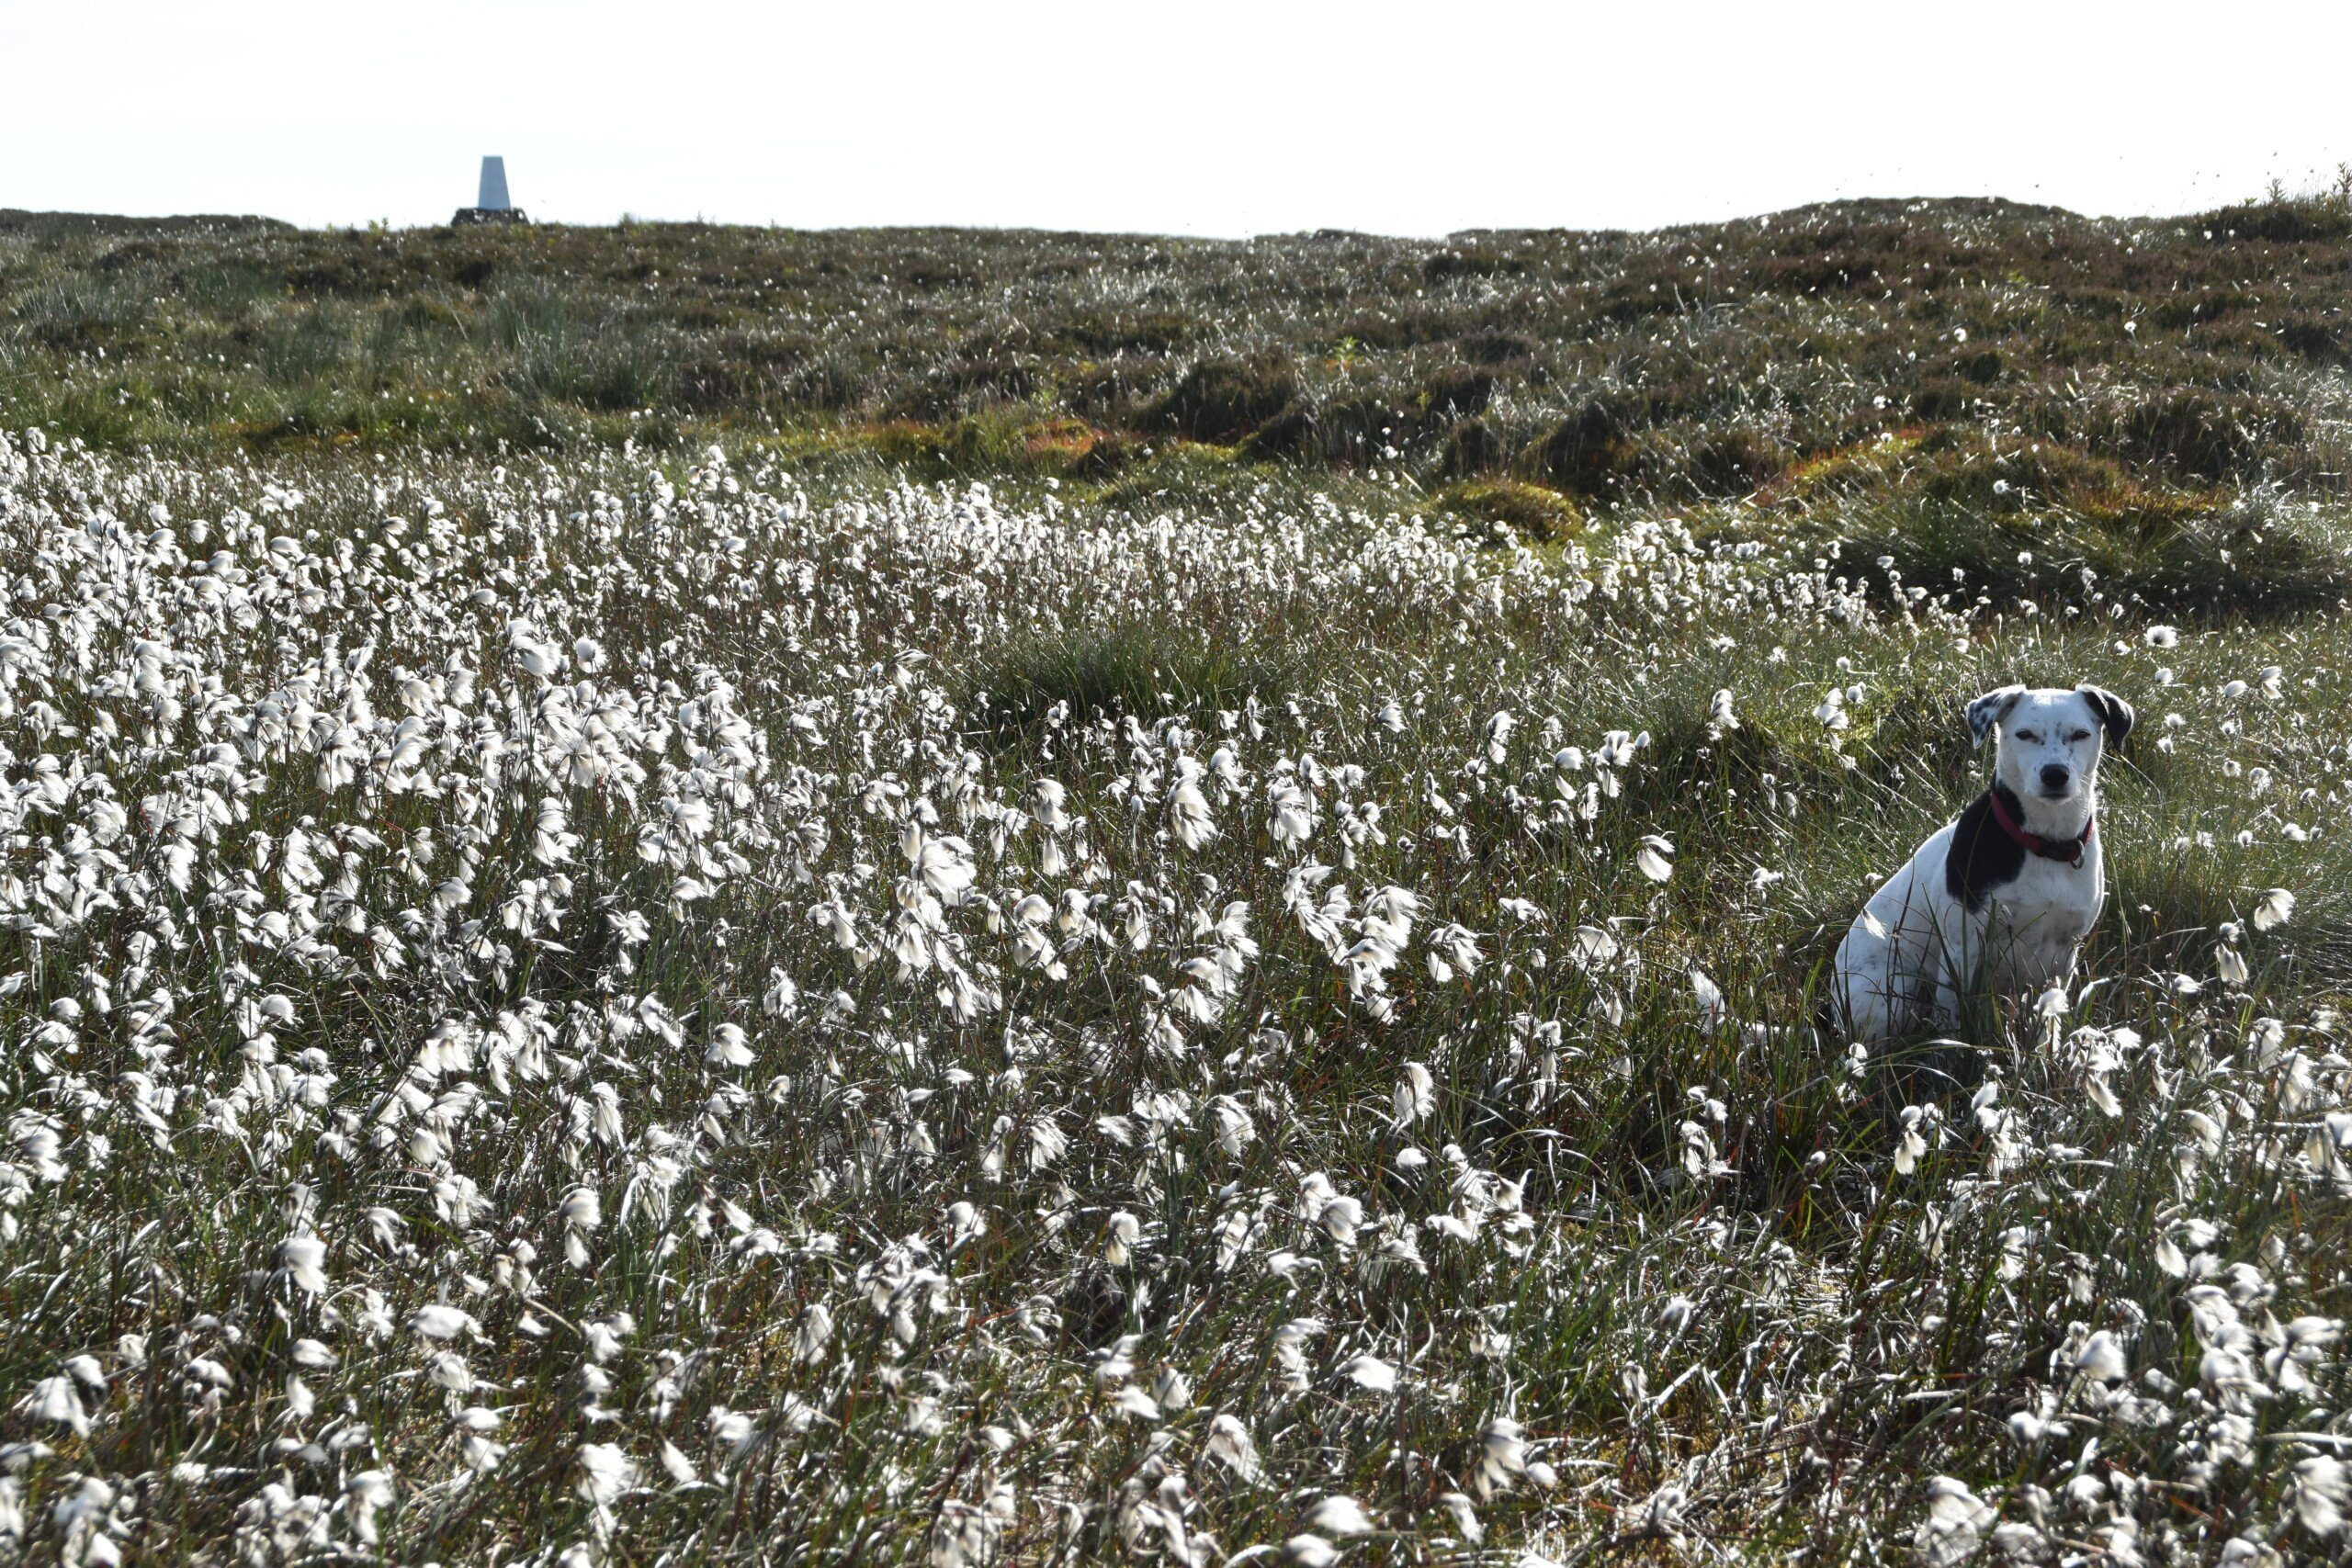 Daisy sitting in cottongrass on Pennine Way with trig point in background